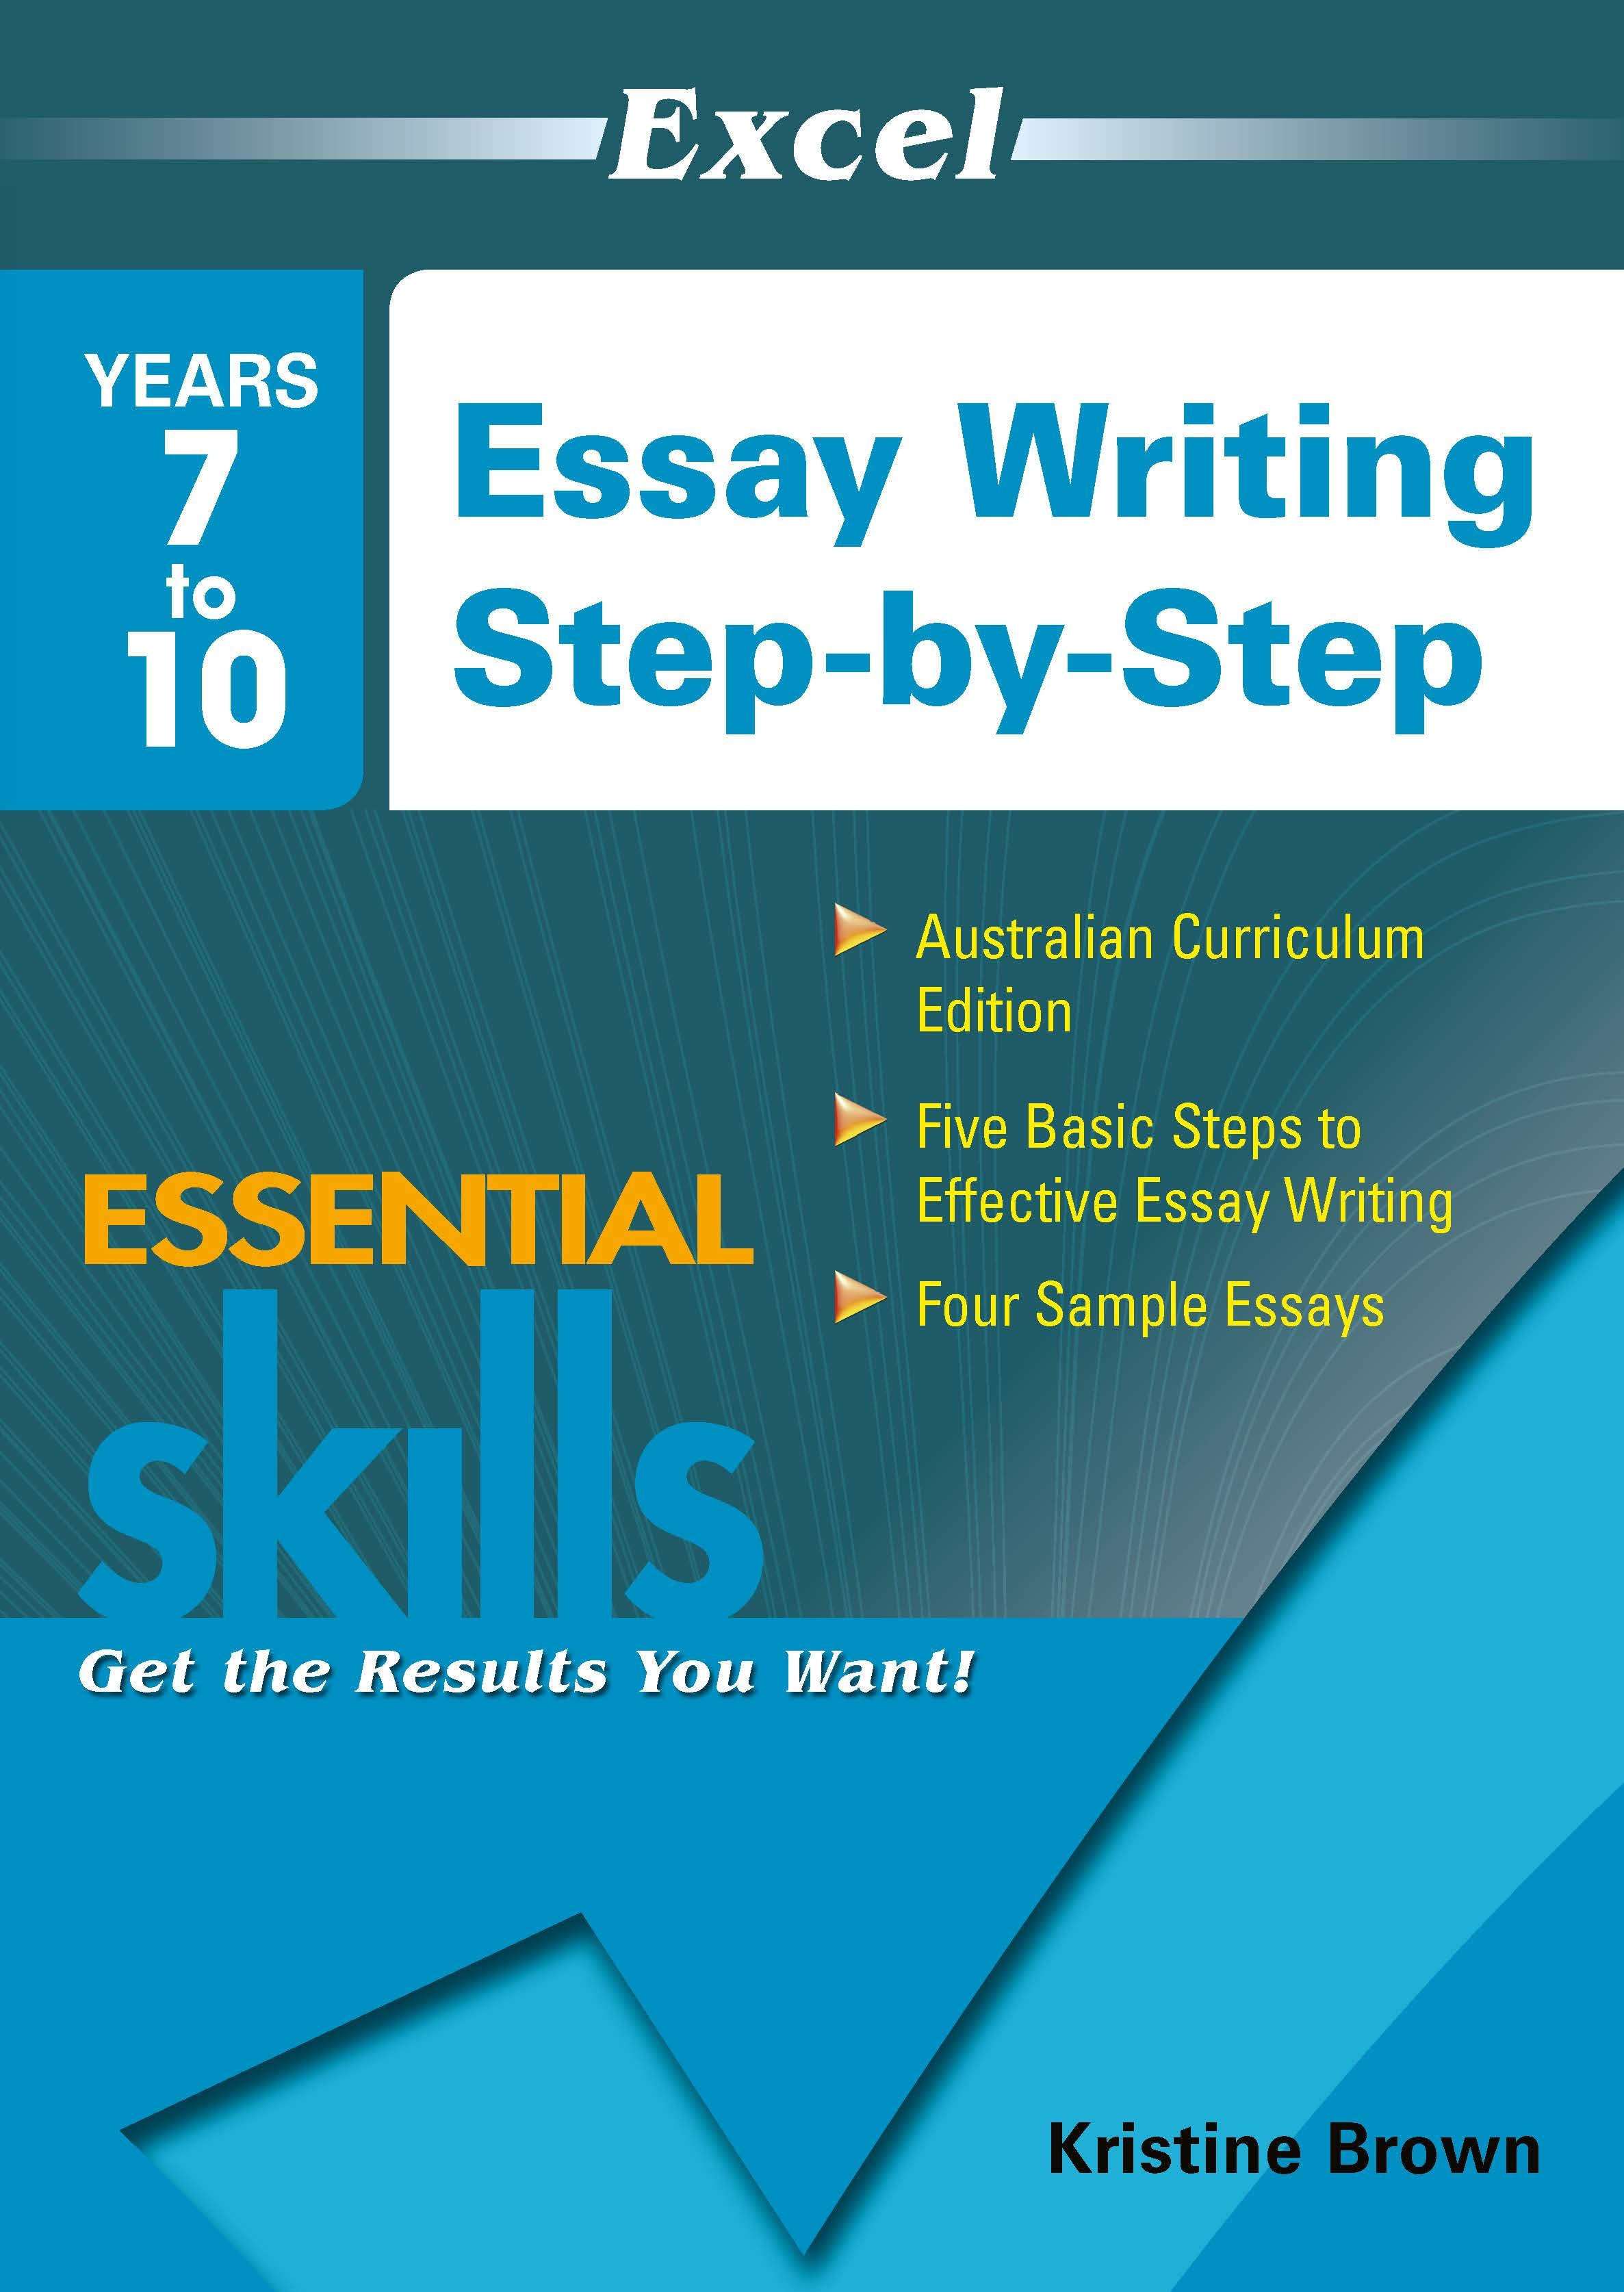 Cheap expository essay proofreading service for masters